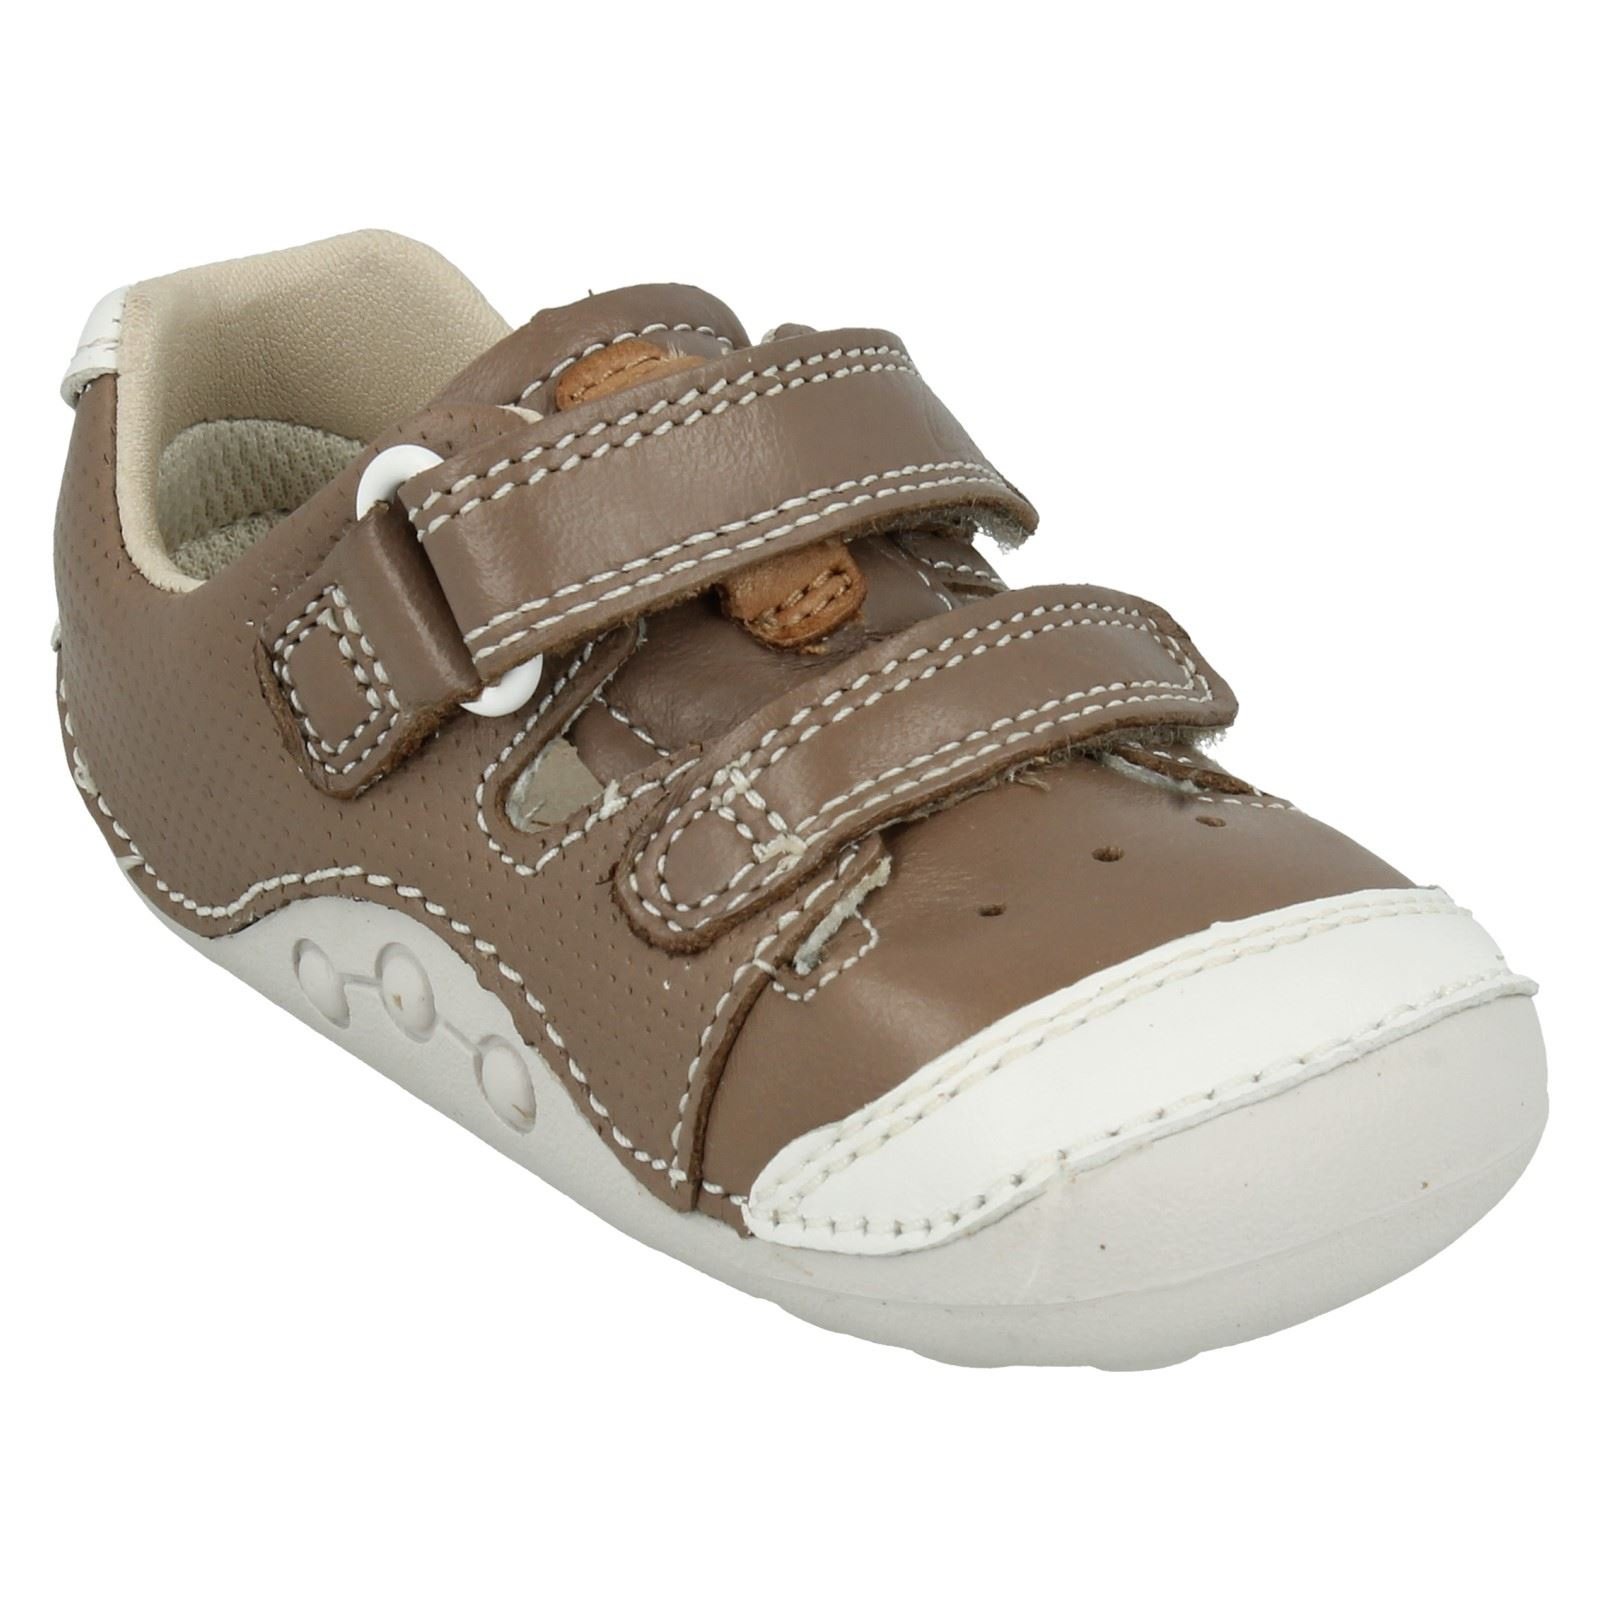 Boys Clarks First Shoes Label Tiny Boy